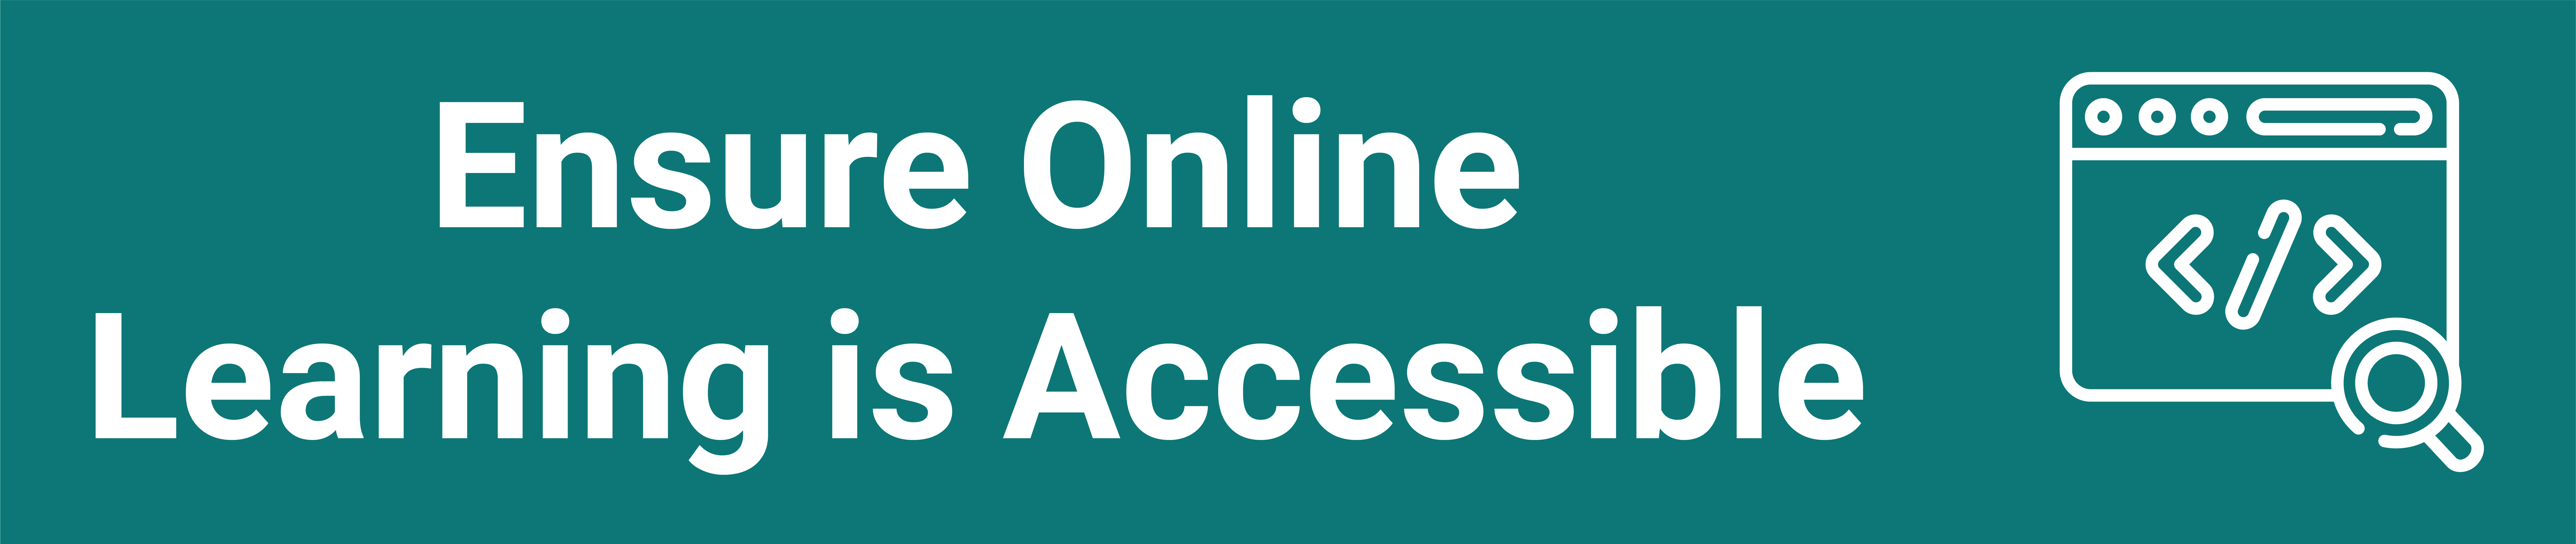 Teal background with an icon of a magnifying glass in front of a computer screen and the words Ensure Online Learning is Accessible in white